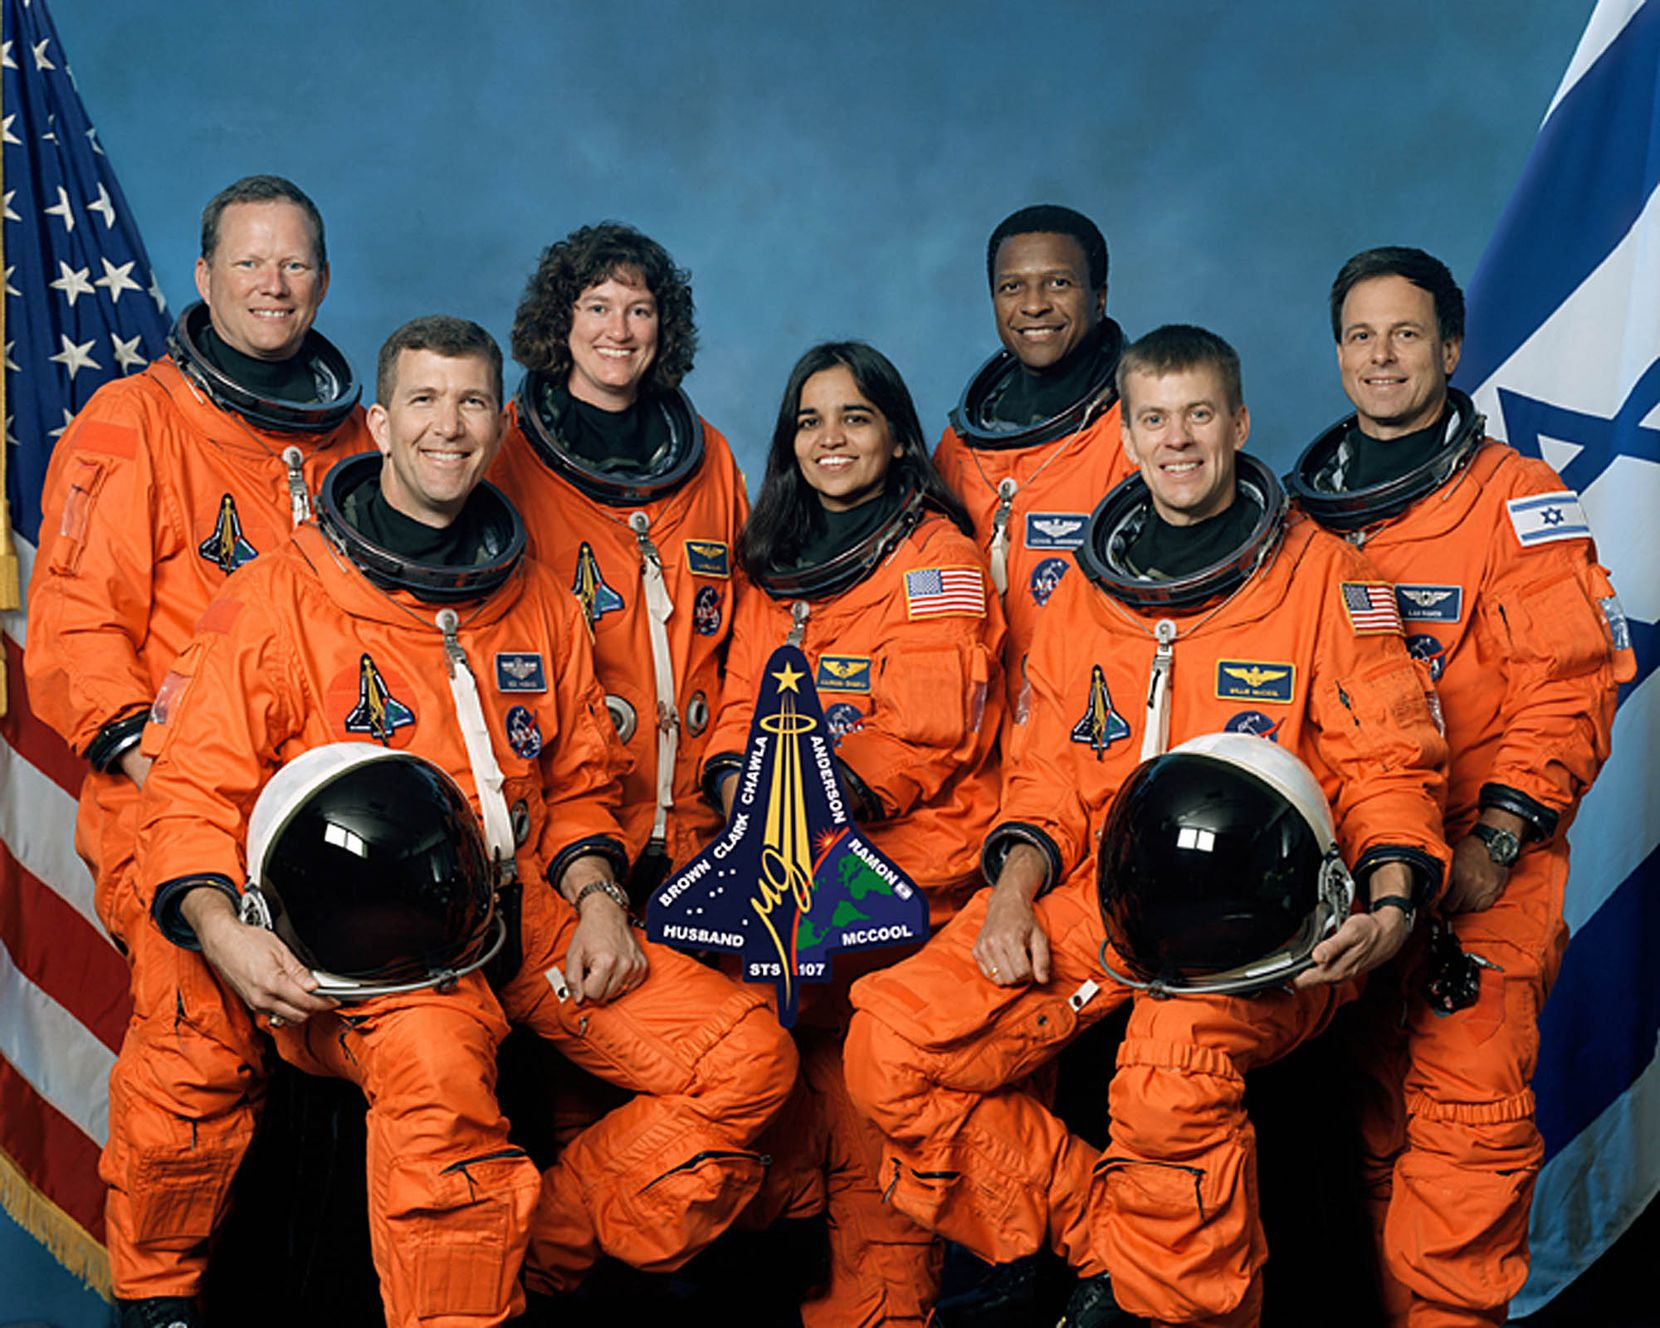 """(FILES): This undated NASA handout image obtained 26 August, 2003 shows the crew of the US space shuttle Columbia.  The accident of the US pace shuttle Columbia one decade ago, February 1, 2003, which claimed the lives of seven astronauts on board, was crucial in ending the US shuttle program in 2011. On the 10th anniversary of the disaster NASA will  commemorate the astronauts killed in the ill-fated mission in a ceremony to be held February 1, 2013 at the military cemetery in Arlington, Virginia,  near Washington, DC. Front from left are: astronauts Rick D. Husband, mission commander; Kalpana Chawla, mission specialist; and William C. McCool, pilot. Rear from left are:  David M. Brown, Laurel B. Clark, and Michael P. Anderson, all mission specialists; and Ilan Ramon, payload specialist, representing the Israeli Space Agency.      AFP PHOTO / FILES / NASA   == RESTRICTED TO EDITORIAL  USE / MANDATORY CREDIT:  """"AFP PHOTO / NASA"""" /  NO SALES / NO MARKETING / NO ADVERTISING CAMPAIGNS / DISTRIBUTED AS A SERVICE TO CLIENTS ==NASA/AFP/Getty Images"""